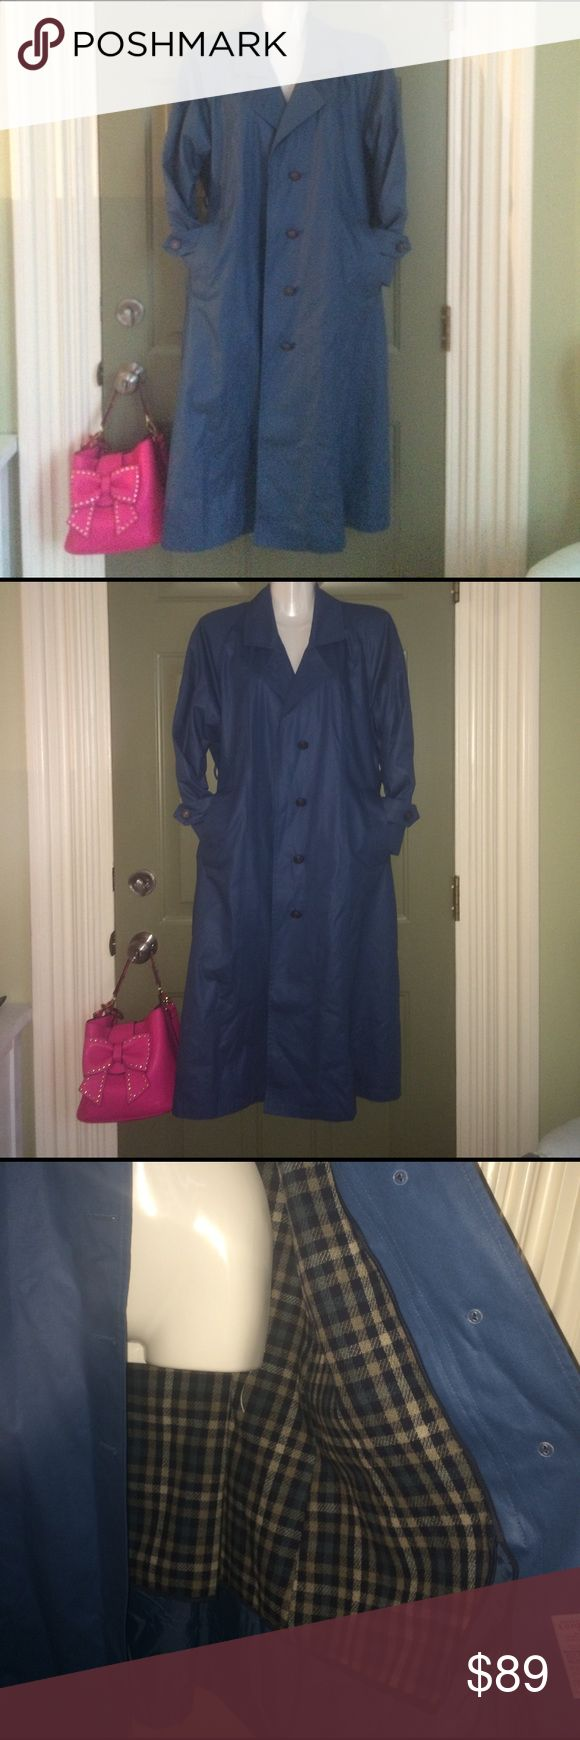 💗Spring/summer TRENCH COAT JACKET maxi longline❤️ 💗 PERFECT SPRING LIGHTWEIGHT TRENCH MAXI LONGLINE JACKET COAT. REMOVABLE LINER. COLLAR, POCKETS, BELT. EXCELLENT CONDITION. PRETTY VERSATILE BLUE. PAIR WITH CUT OFF SHORTS, dresses, business work attire,etc. Not Free People, Not Anthropologie. WOMENS medium. Anthropologie Jackets & Coats